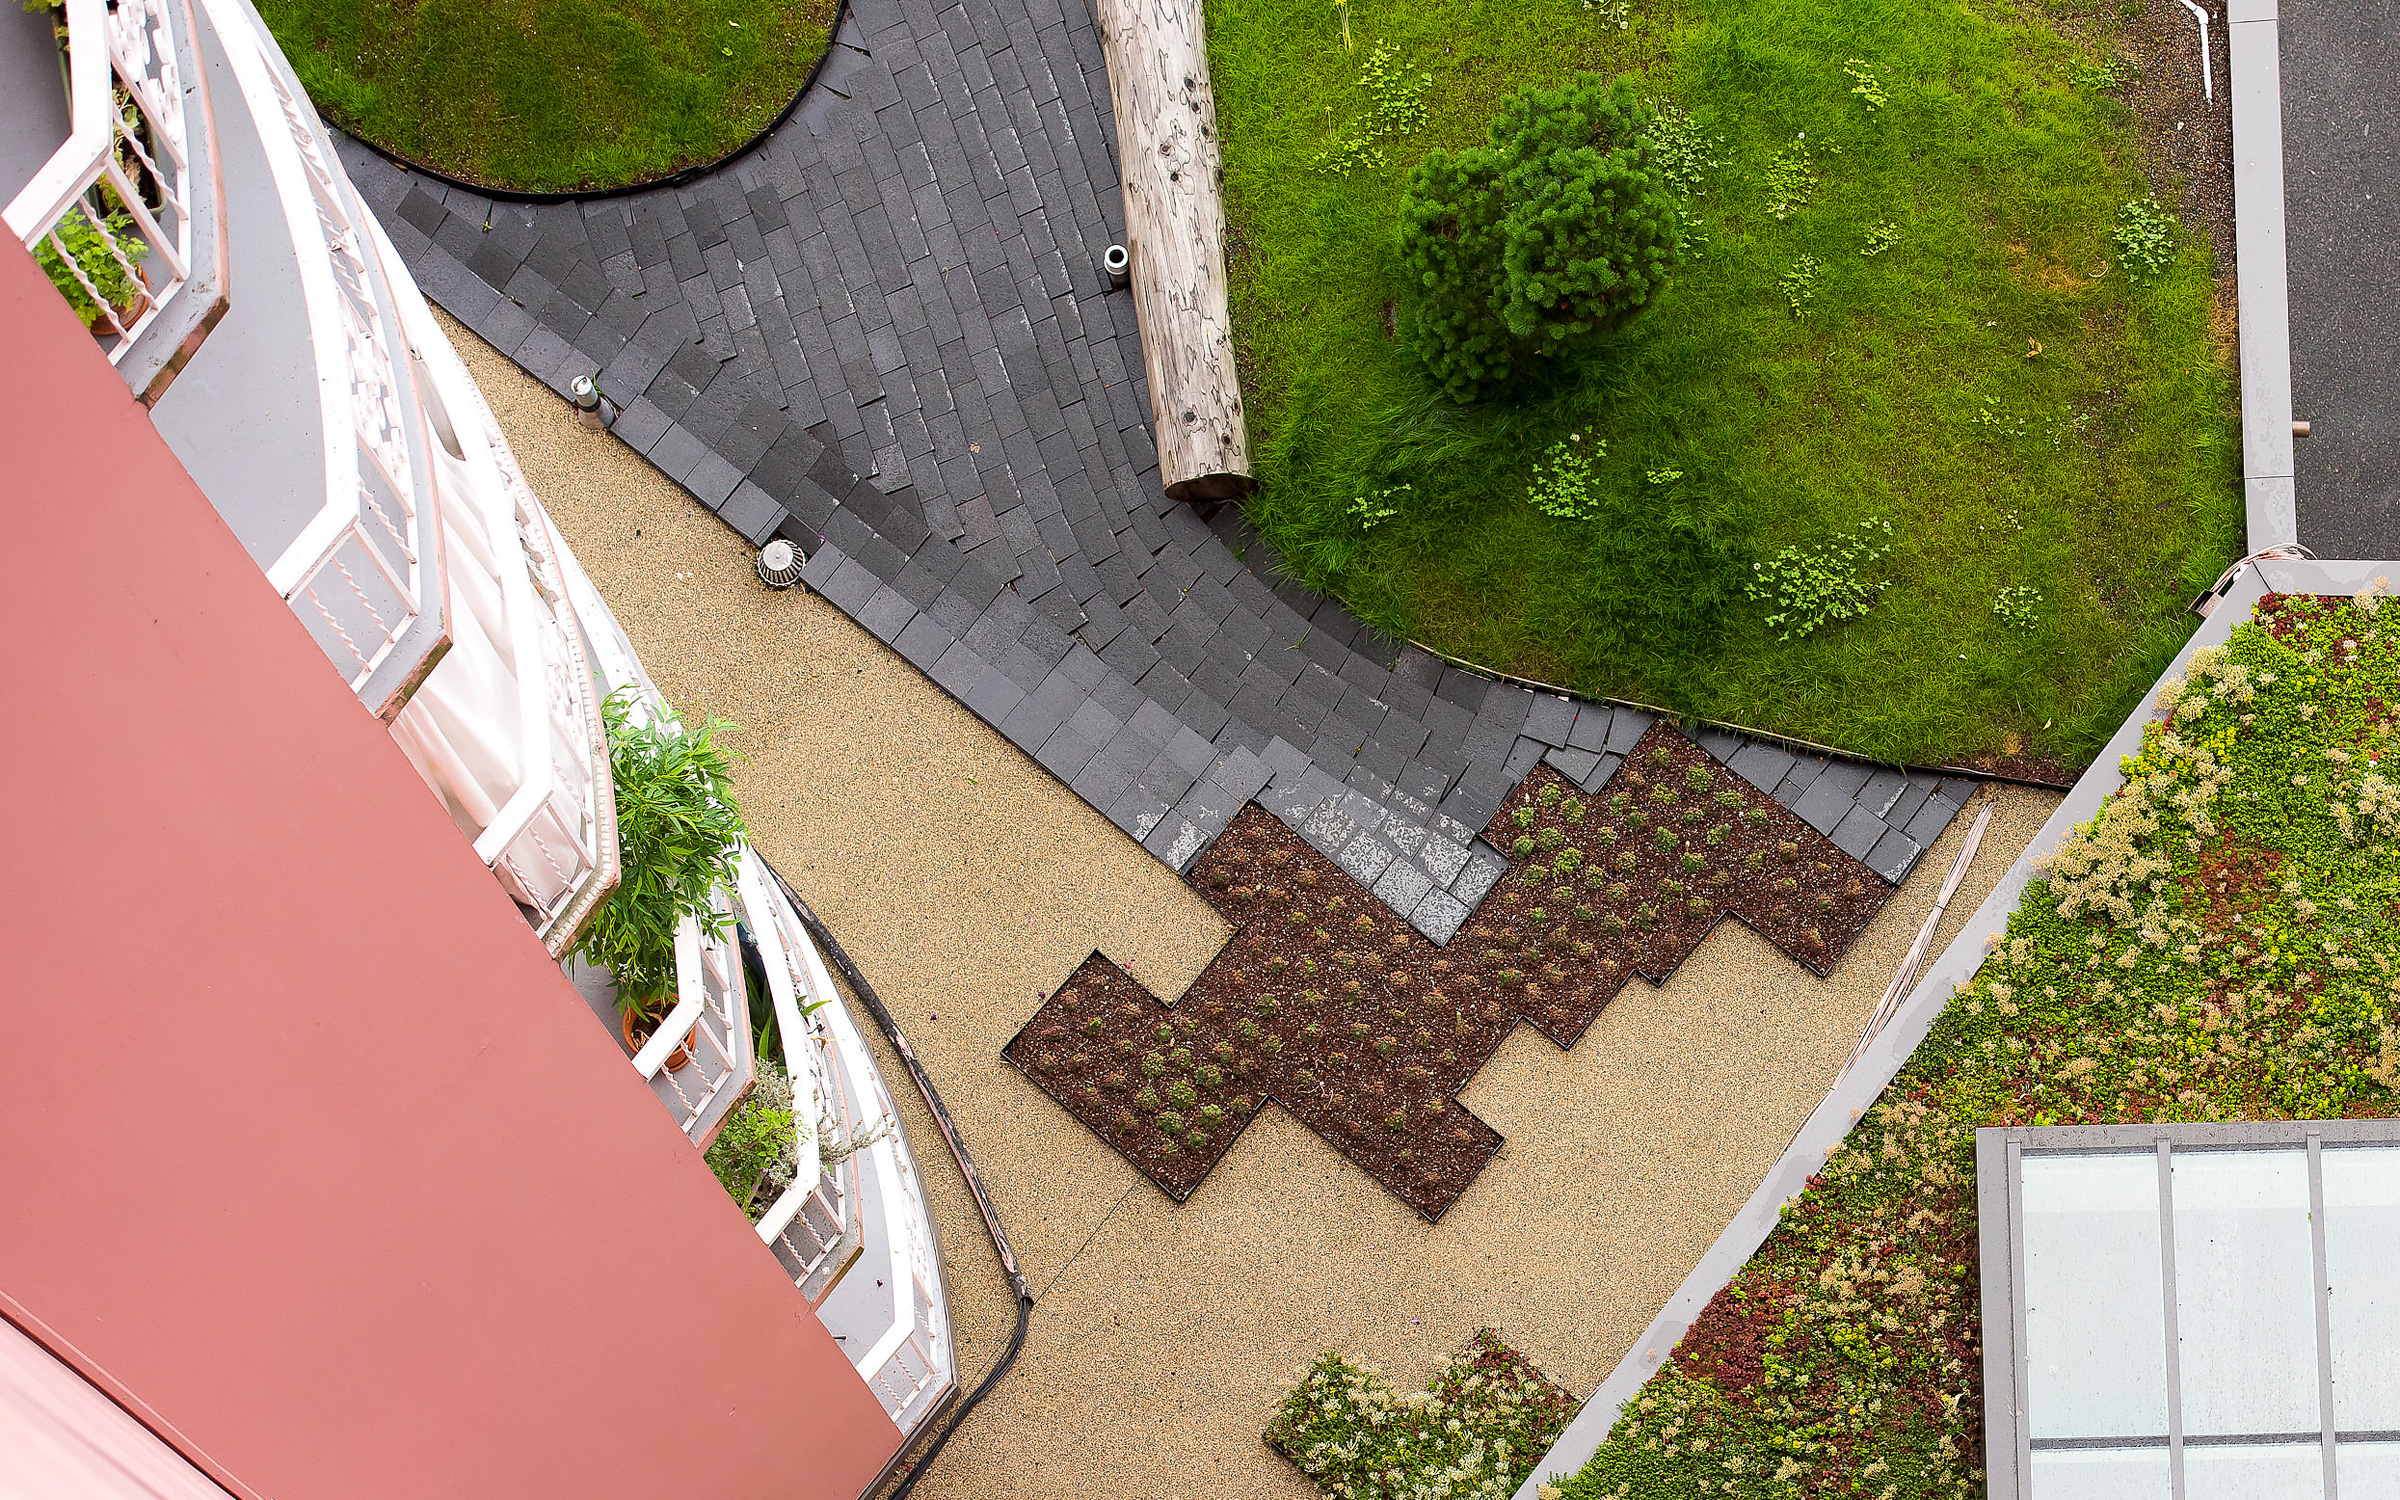 Bird's eye view onto areas vegetated with Sedum, lawn and walkways